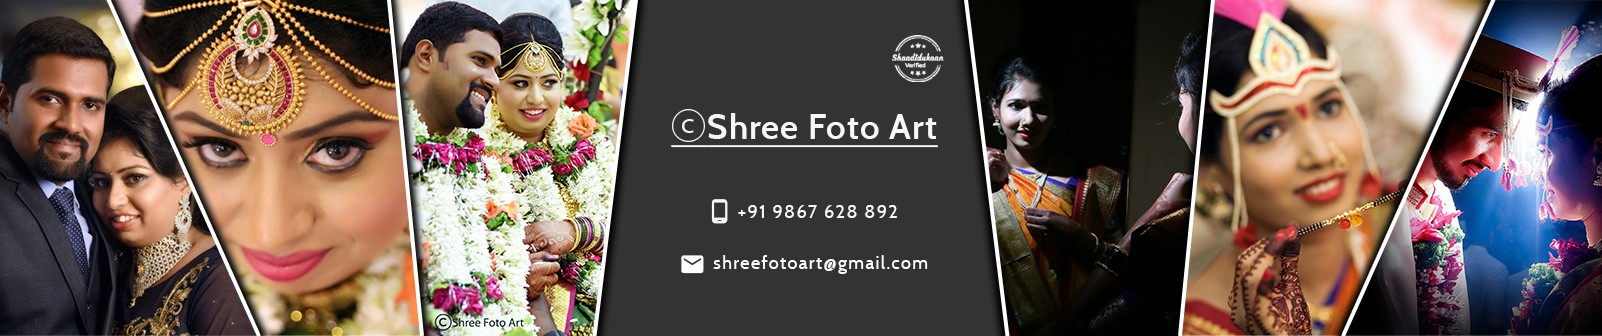 shree-foto-art